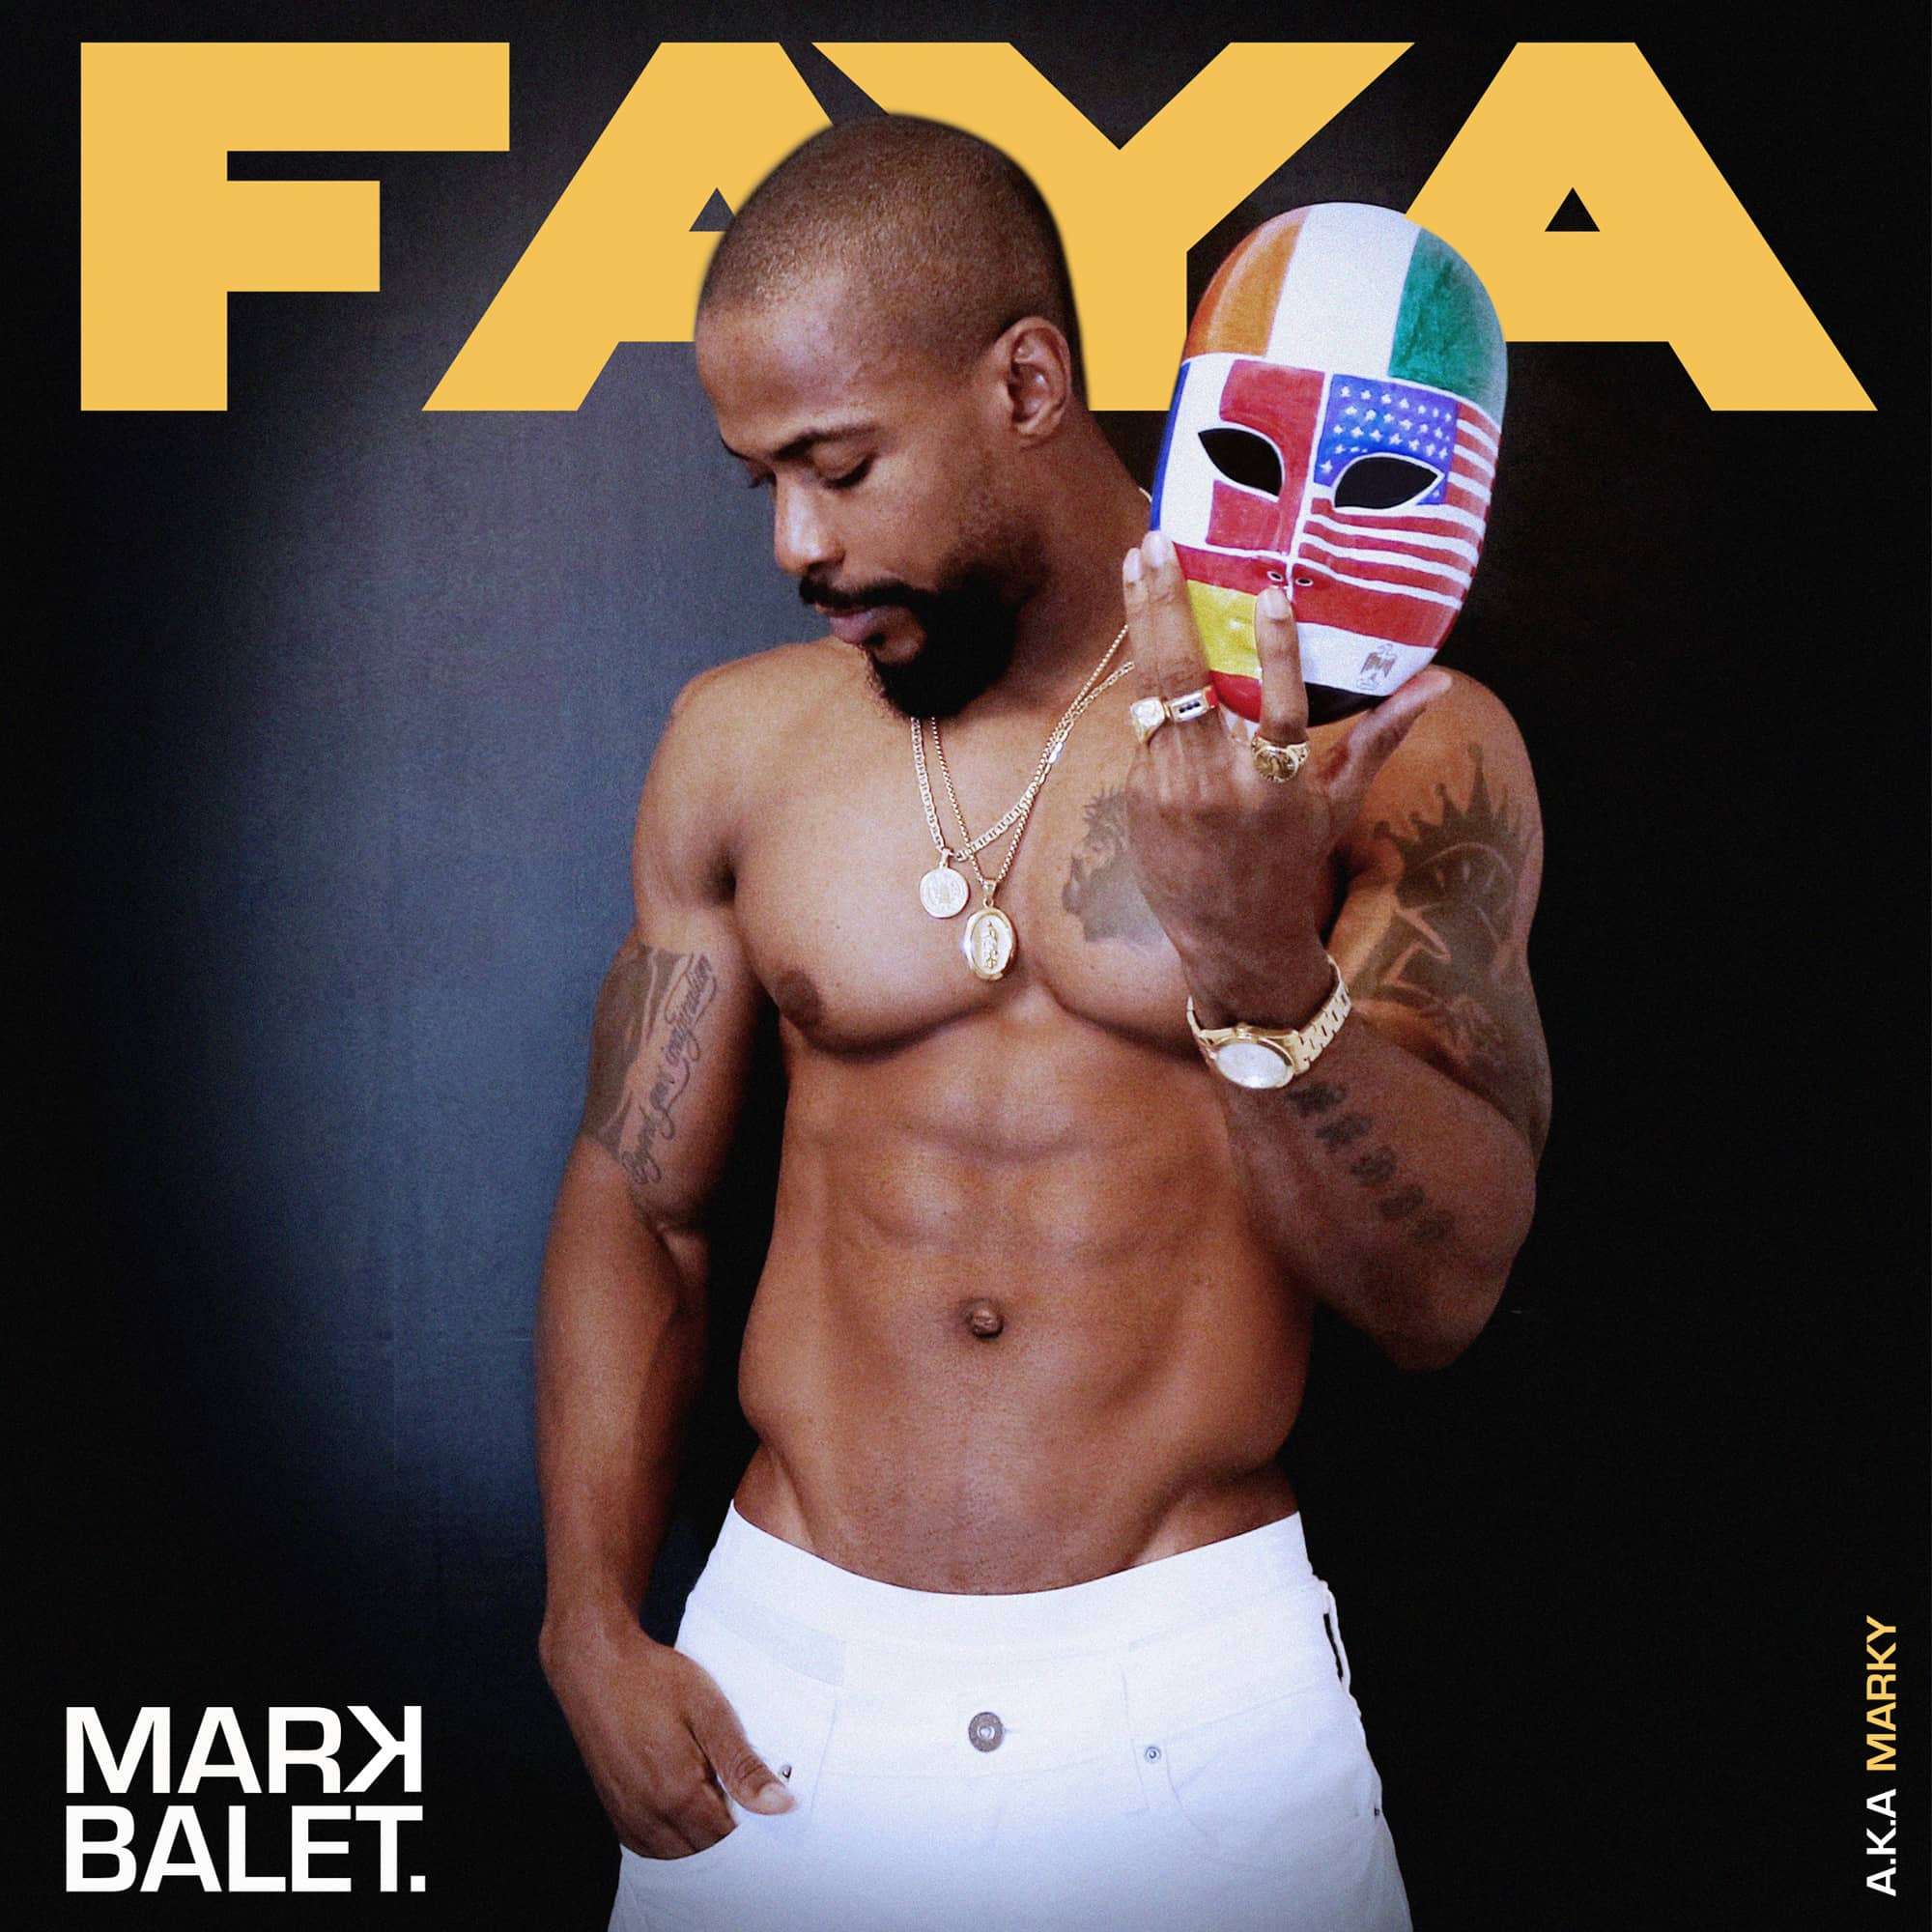 Faya (Album Cover)